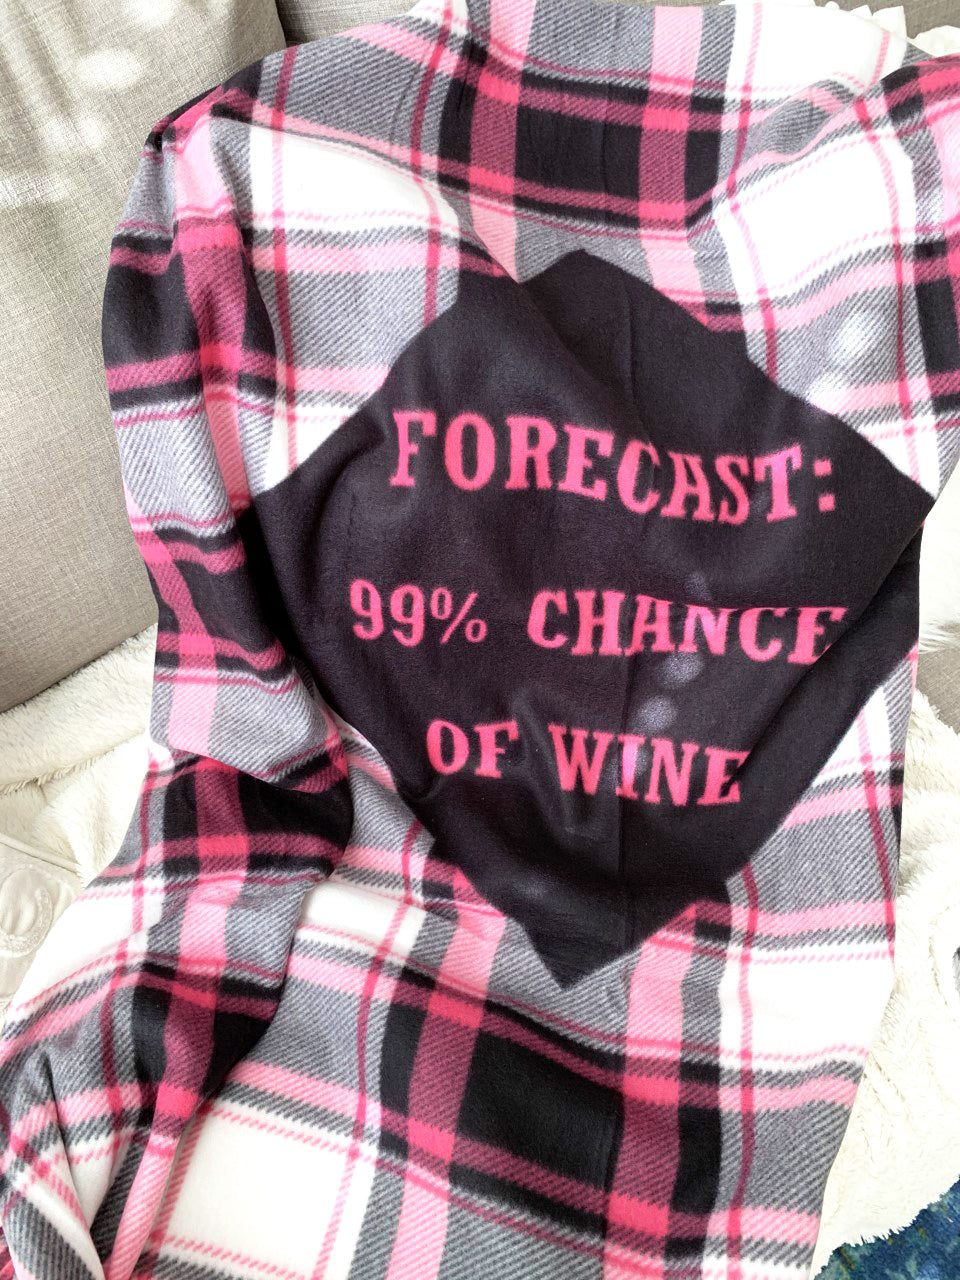 Forecast '99% Chance of Wine' Plaid Blanket